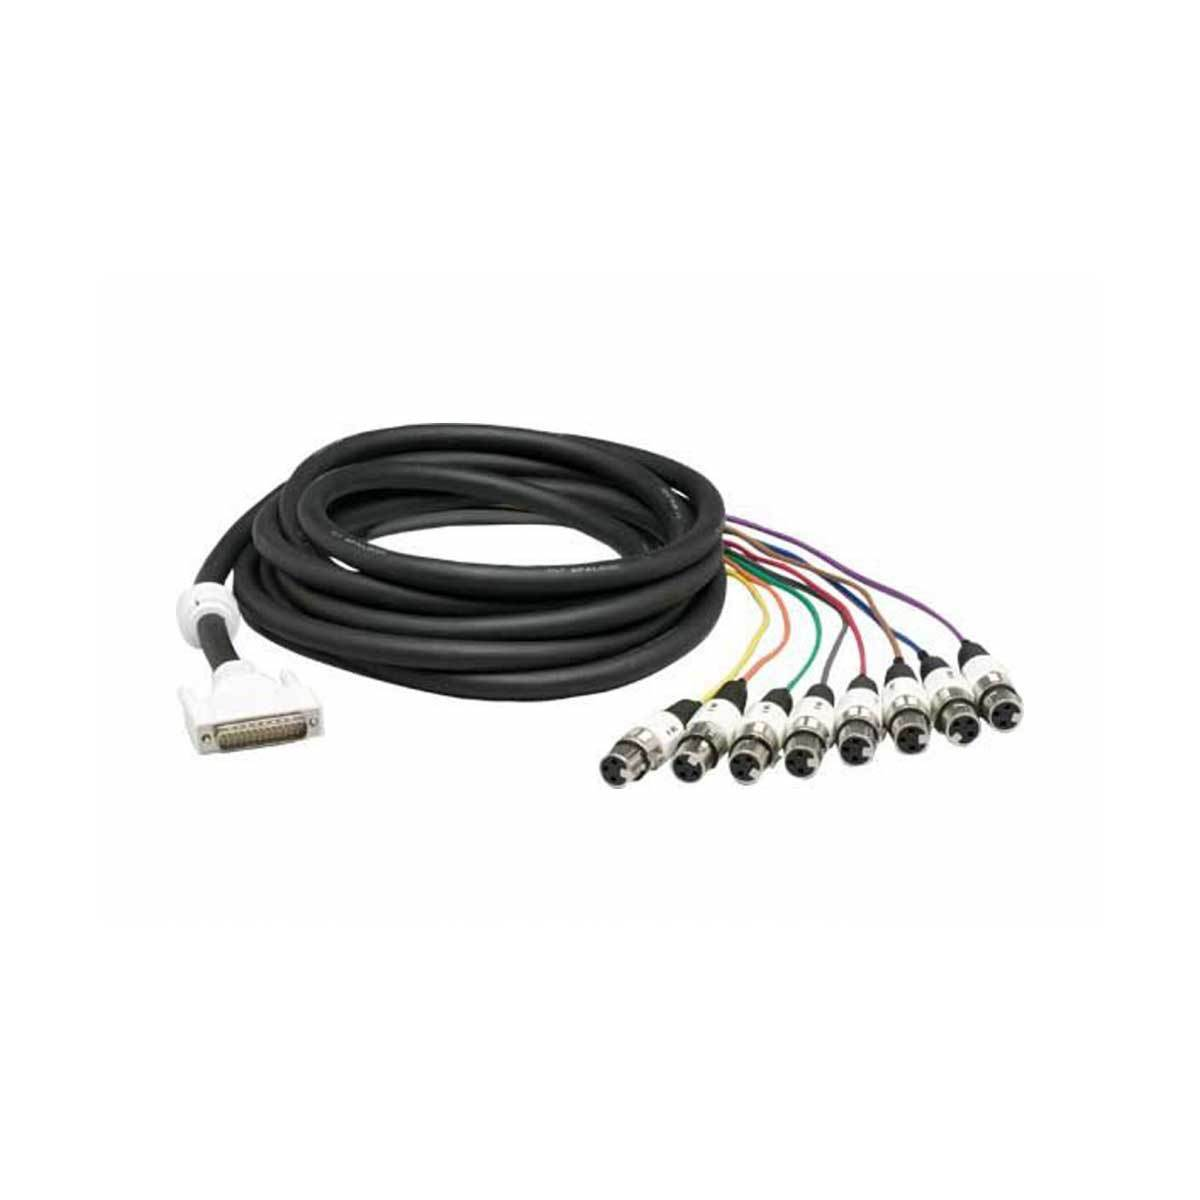 Cables & Adapters - Lynx CBL-AIN85 - Eight-Channel XLR Analog Input Cable For Aurora Converters